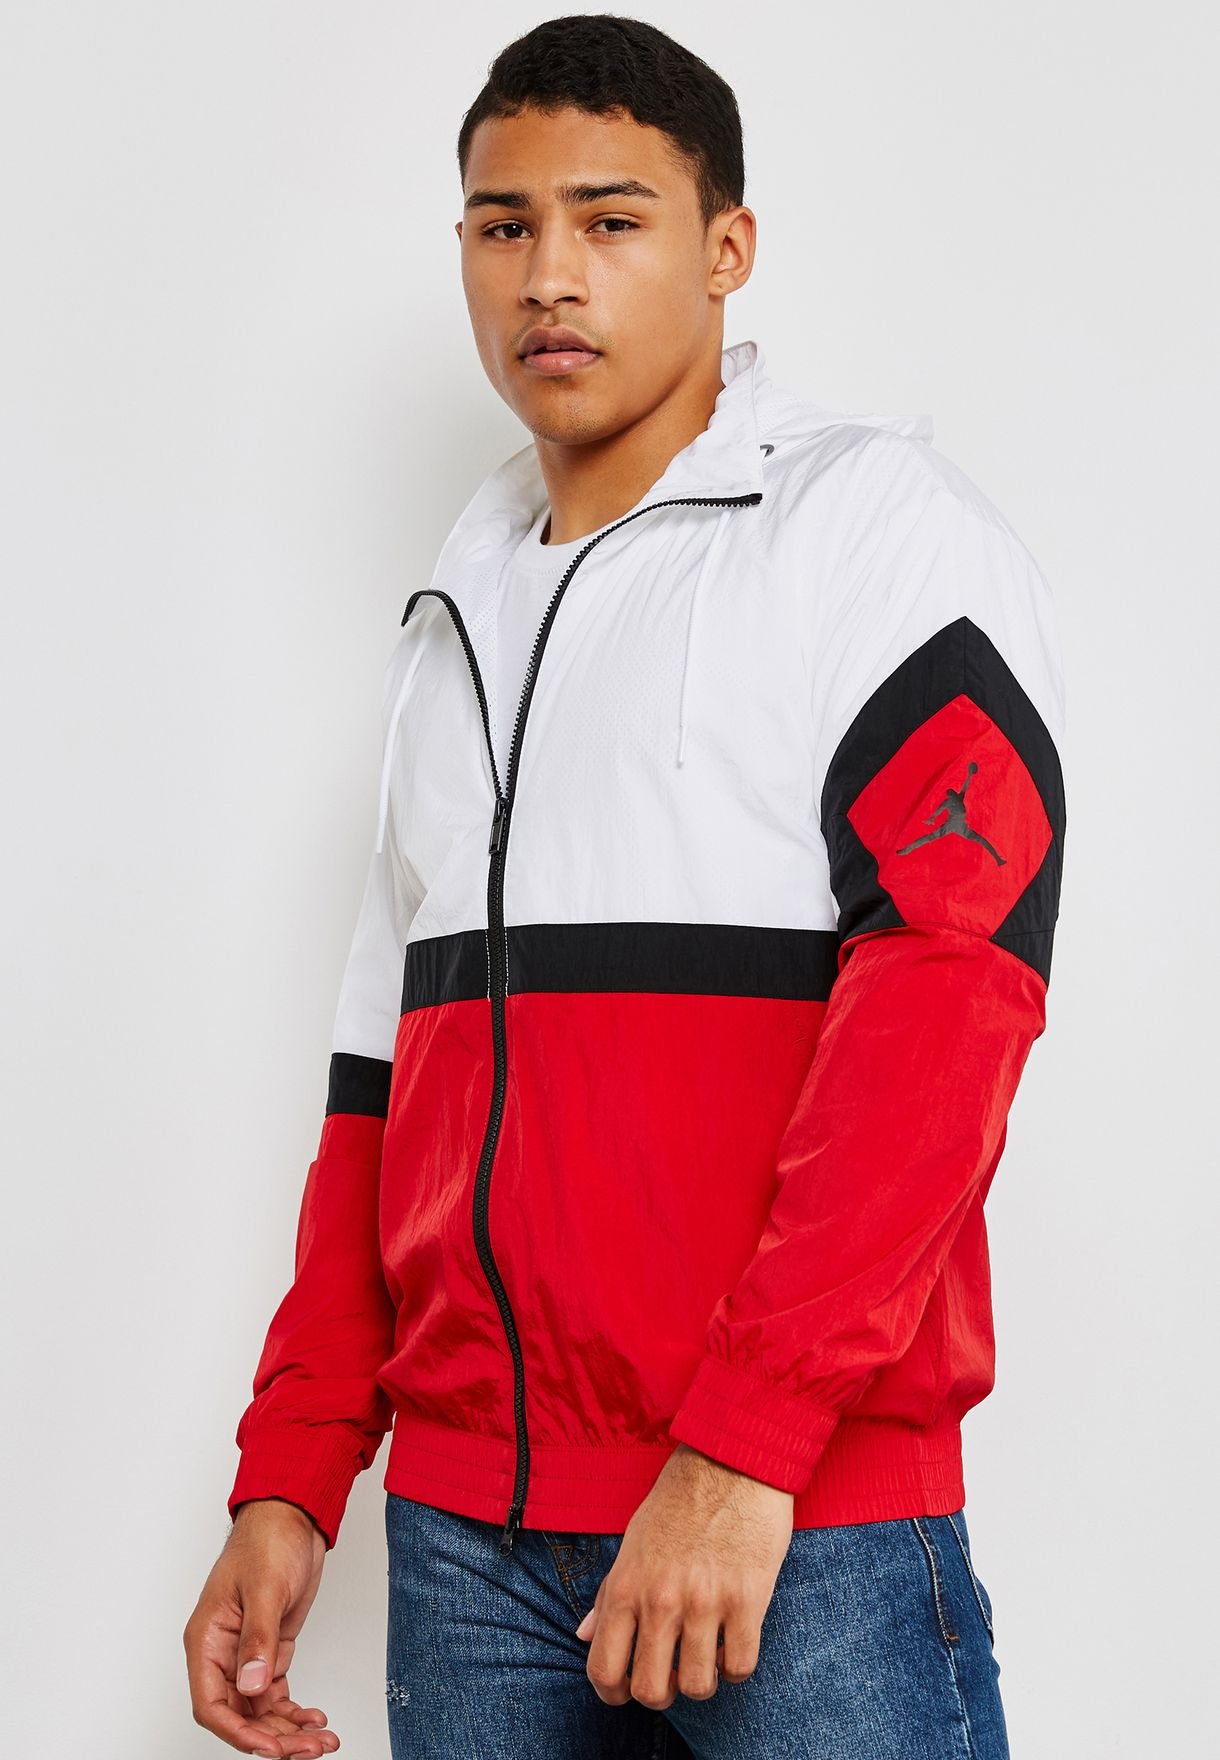 abcd7b2809a4 Shop Nike white Jordan Diamond Track Jacket AQ2683-100 for Men in ...